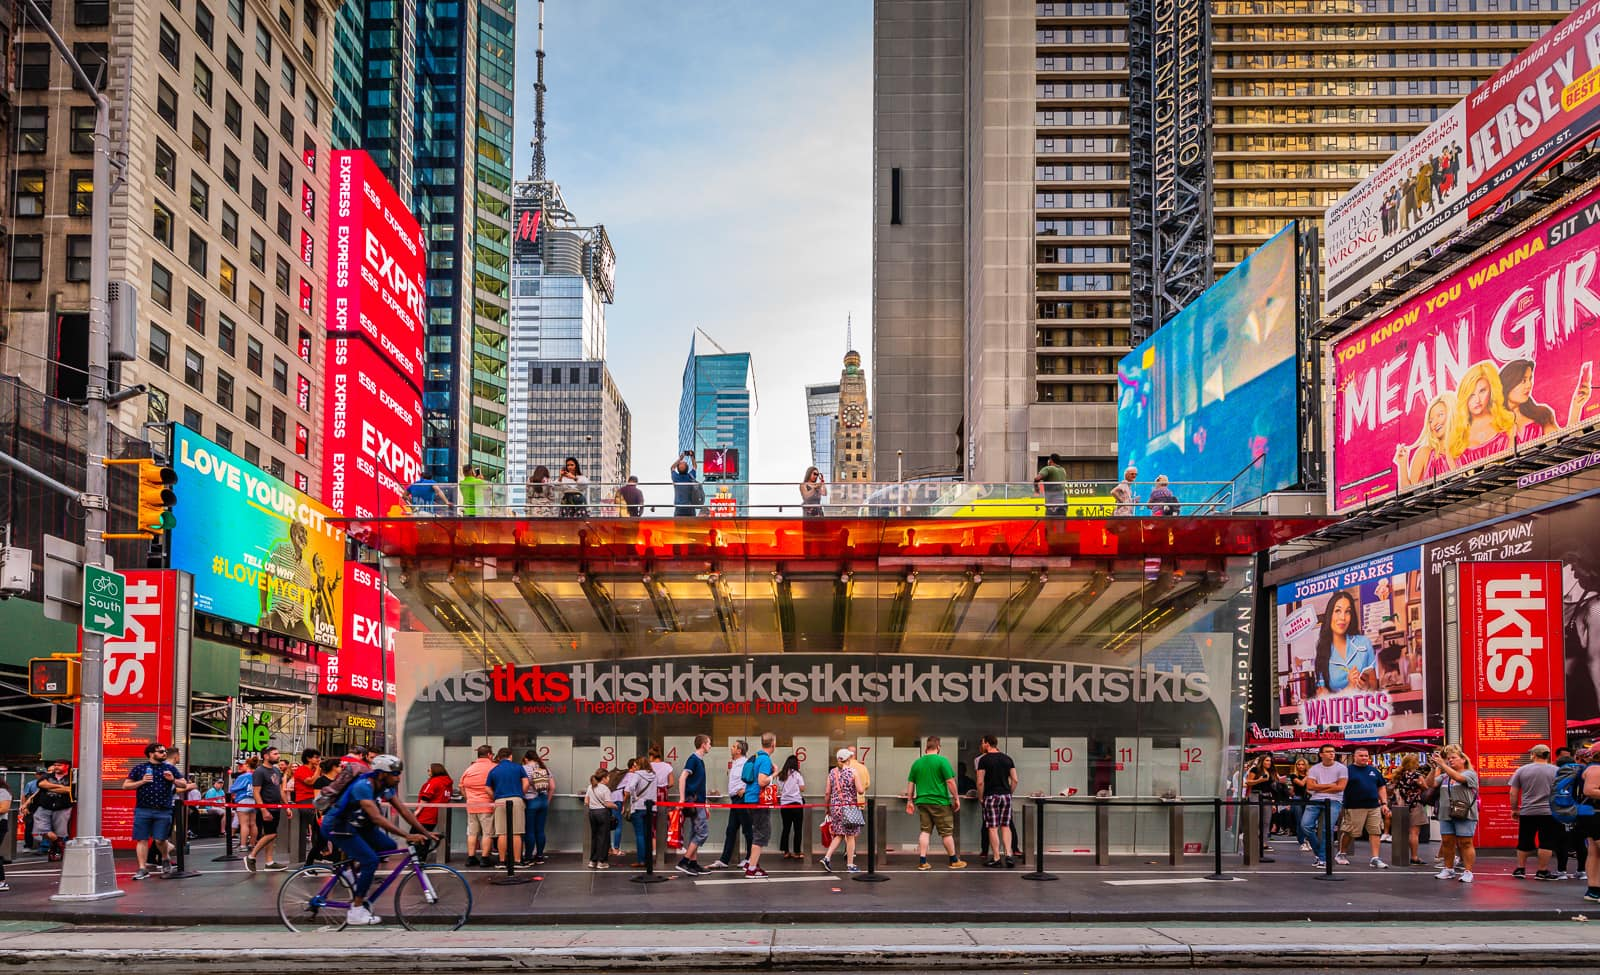 Tkts Broadway Shows Tickets booth in Times Square in New York City.